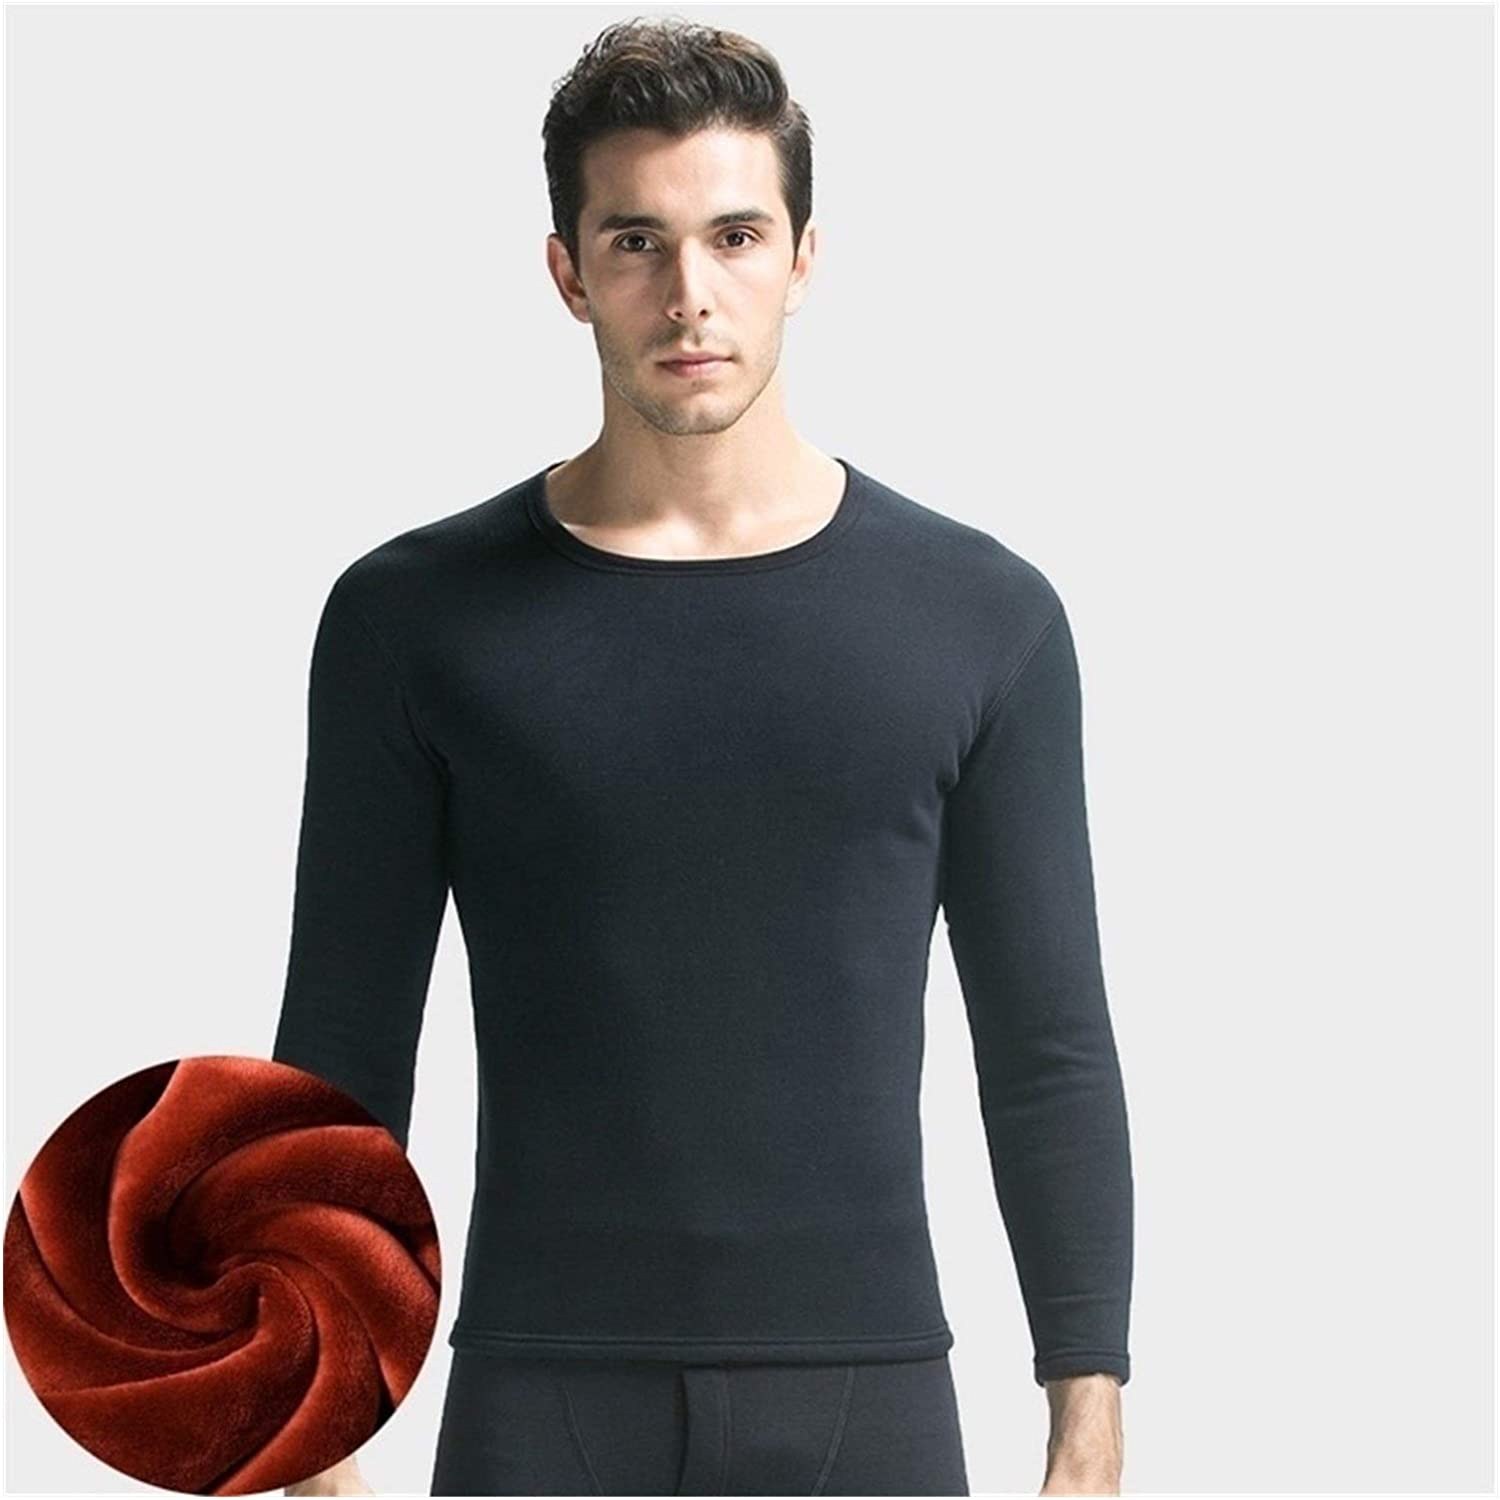 QWERBAM Thermal Underwear Men Sets Fleece Thick Solid Winter Inner Wear Undershirt and Underpants Size L to XXXL (Color : Men Navy Sets, Size : Large)